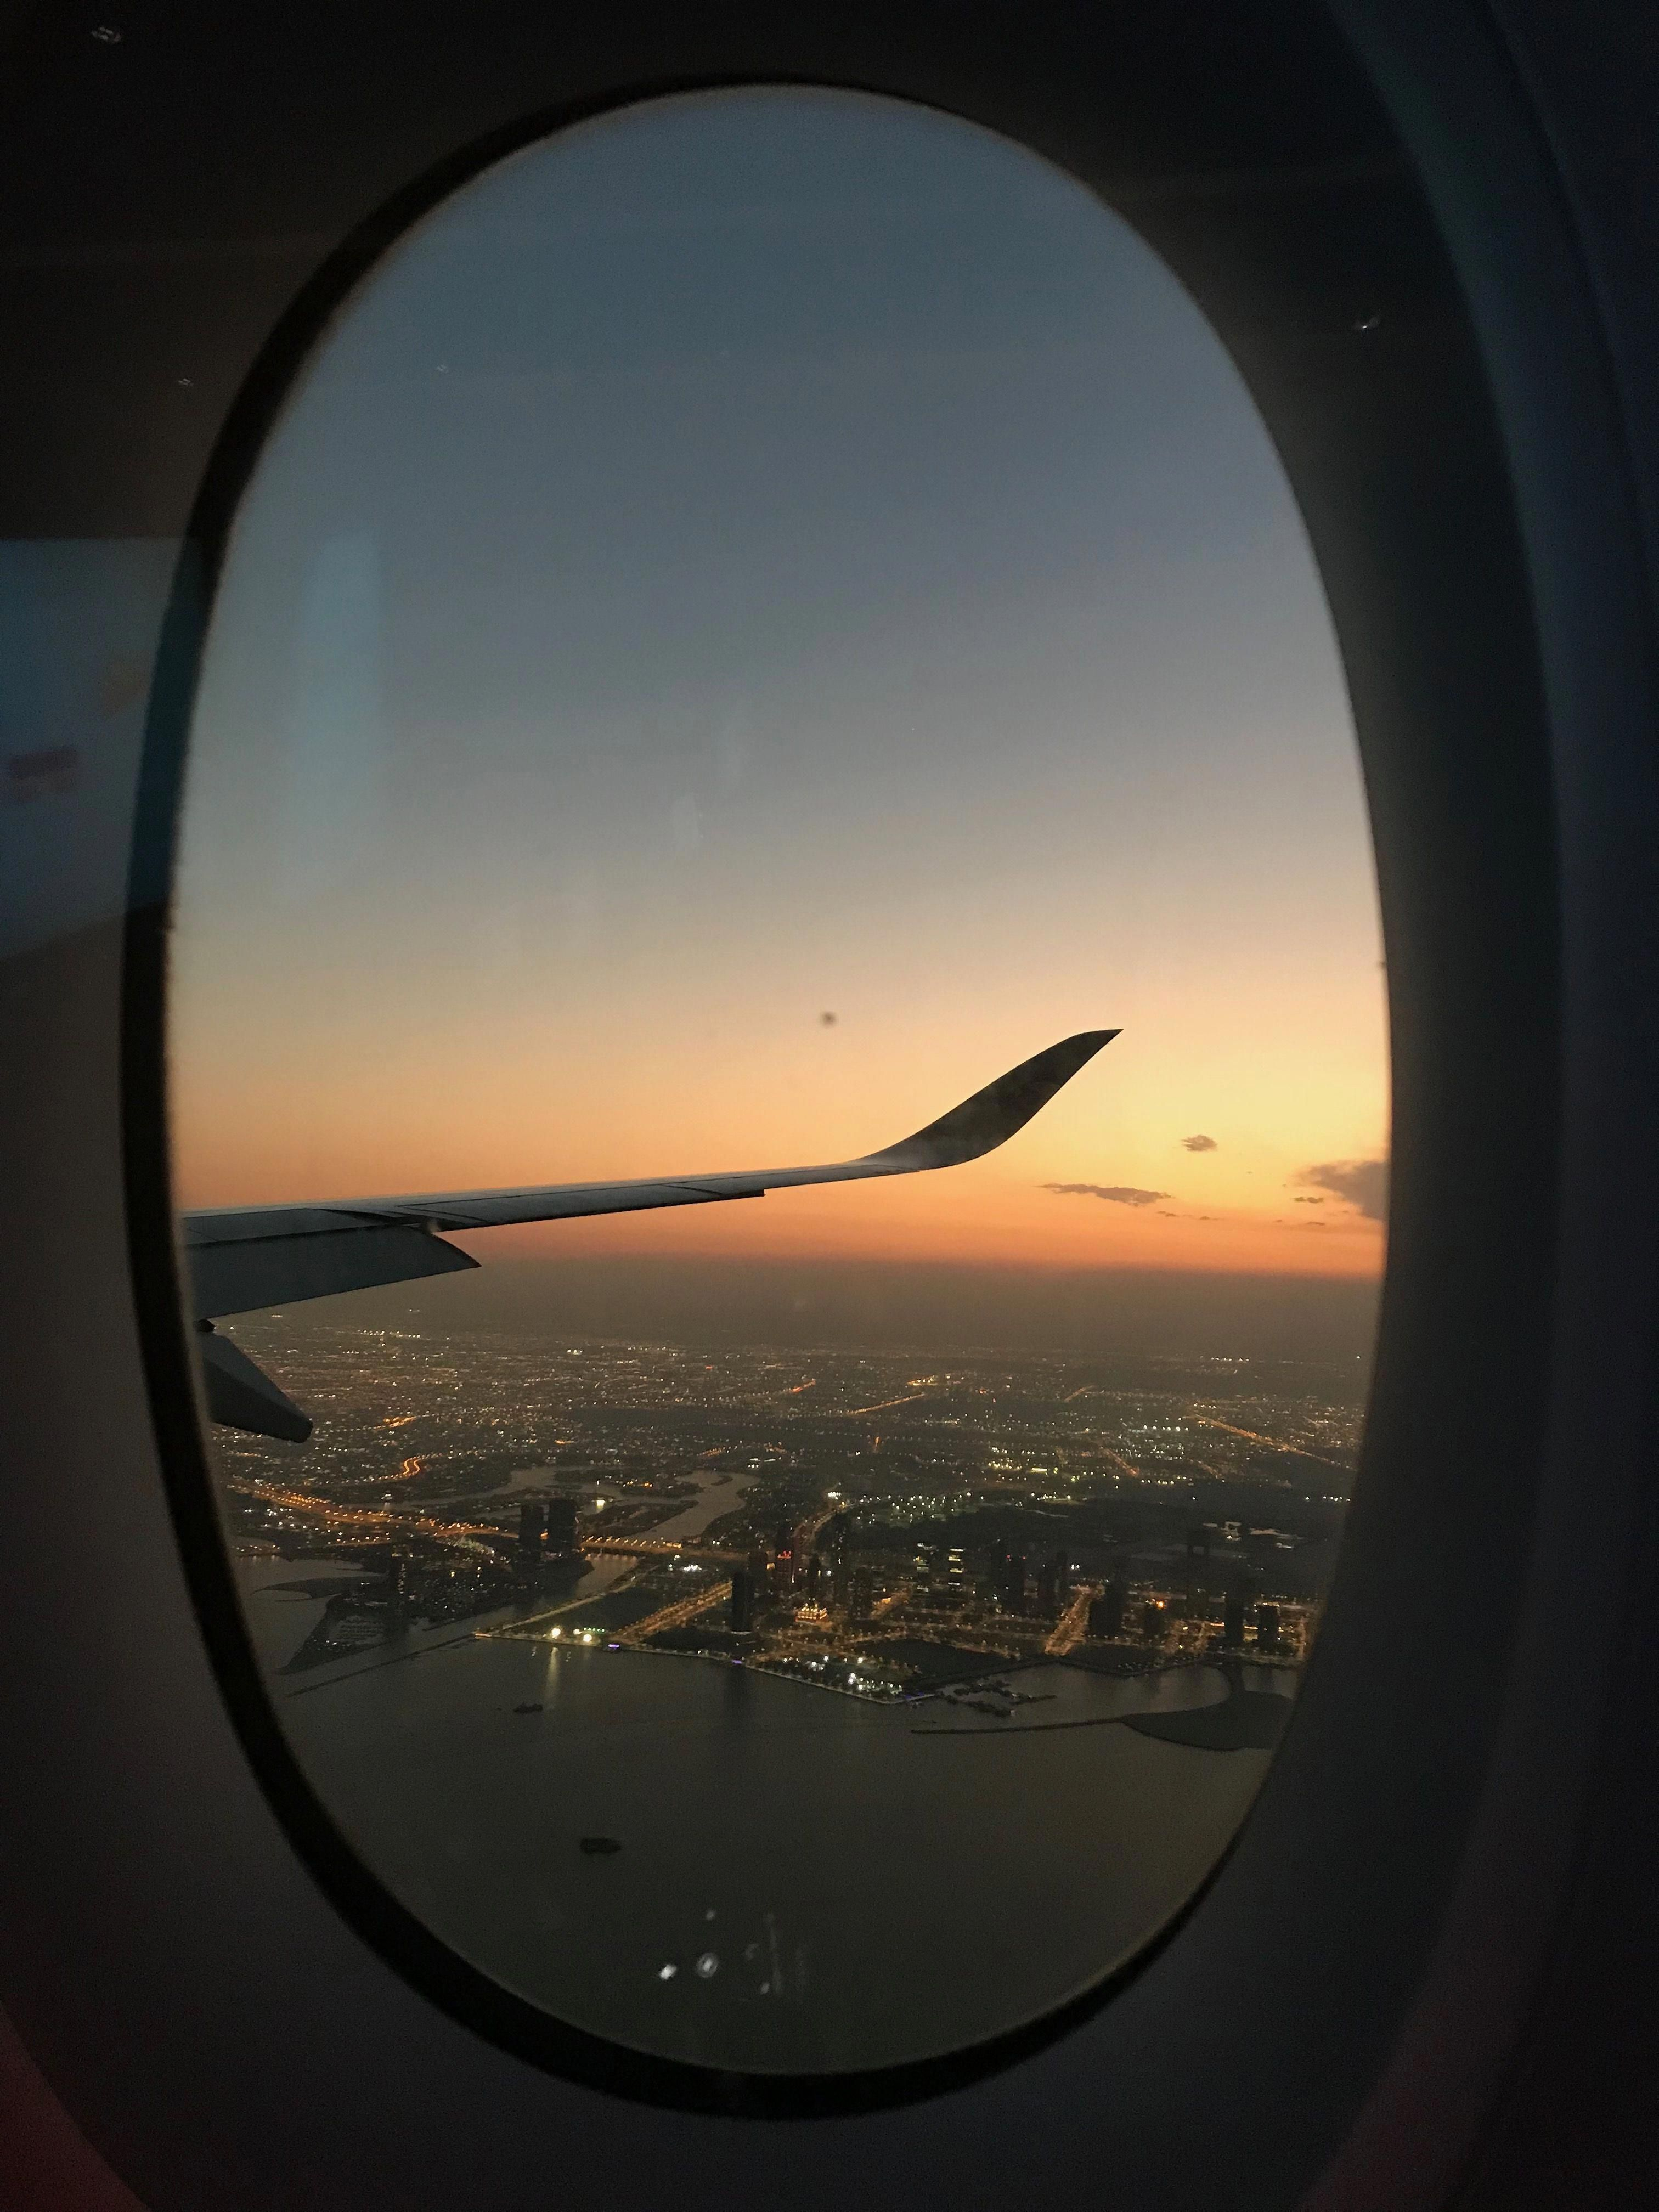 Look At This Magnificent Photo What An Inventive Concept Windowsphotography Plane Window View Picture Cloud Plane Travel